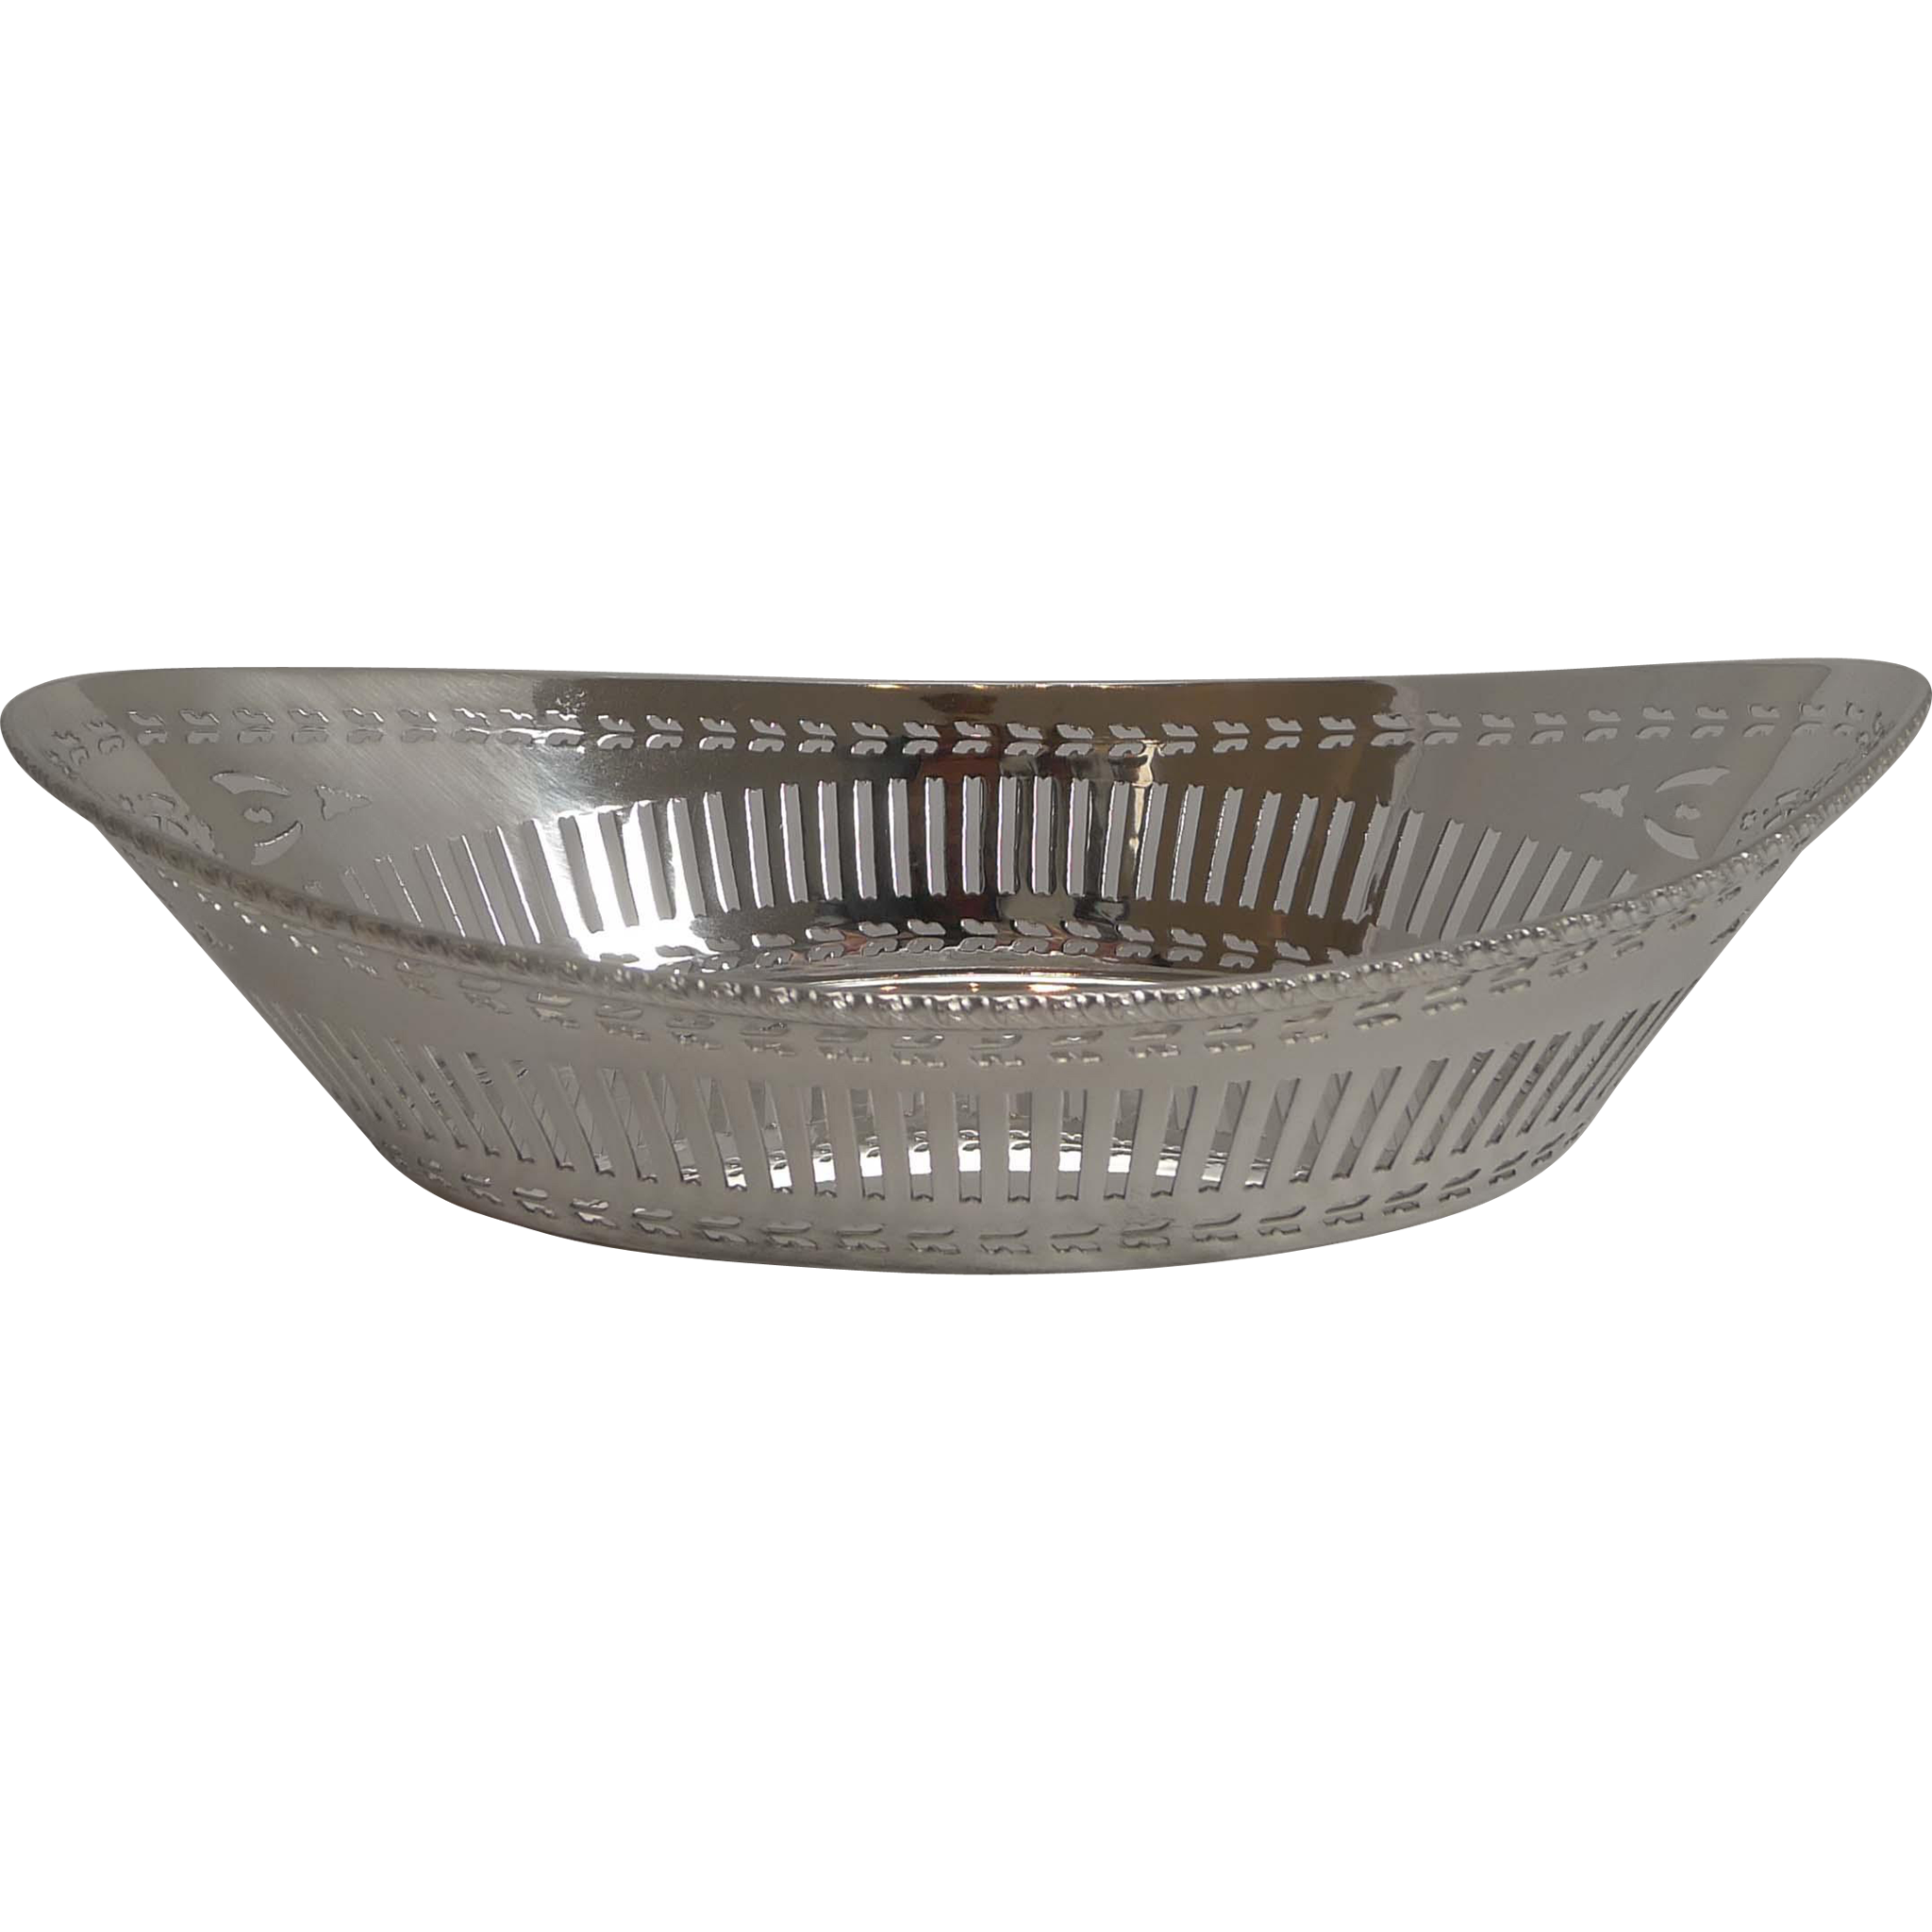 Antique English Silver Plated Bread Basket by Garrard & Co. c.1900